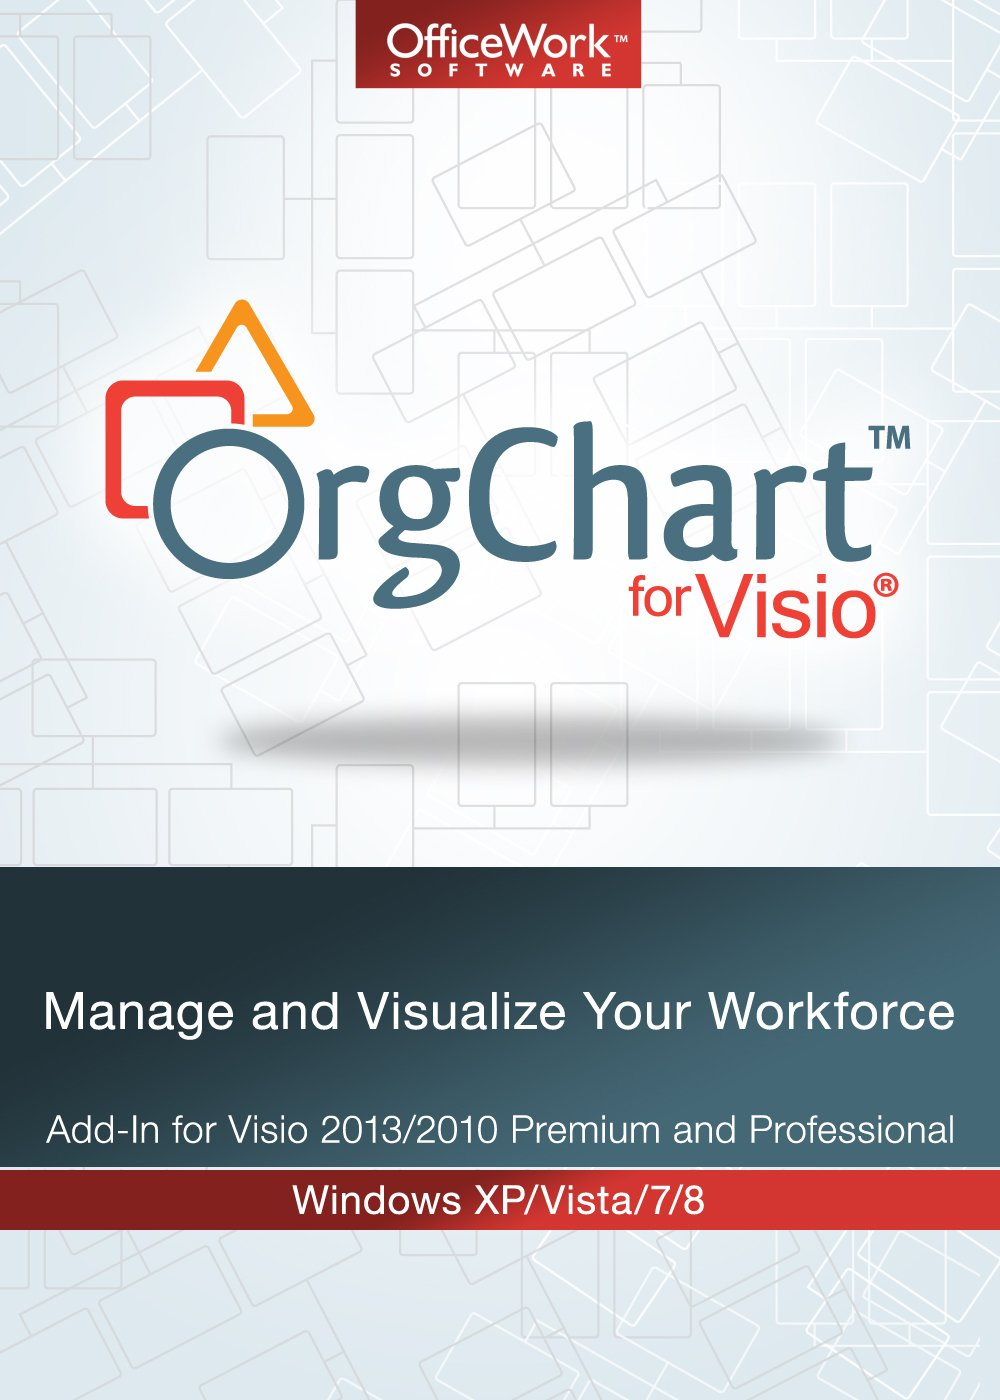 OrgChart for Visio 500 Charting Limit [Download] by OfficeWork Software, LLC